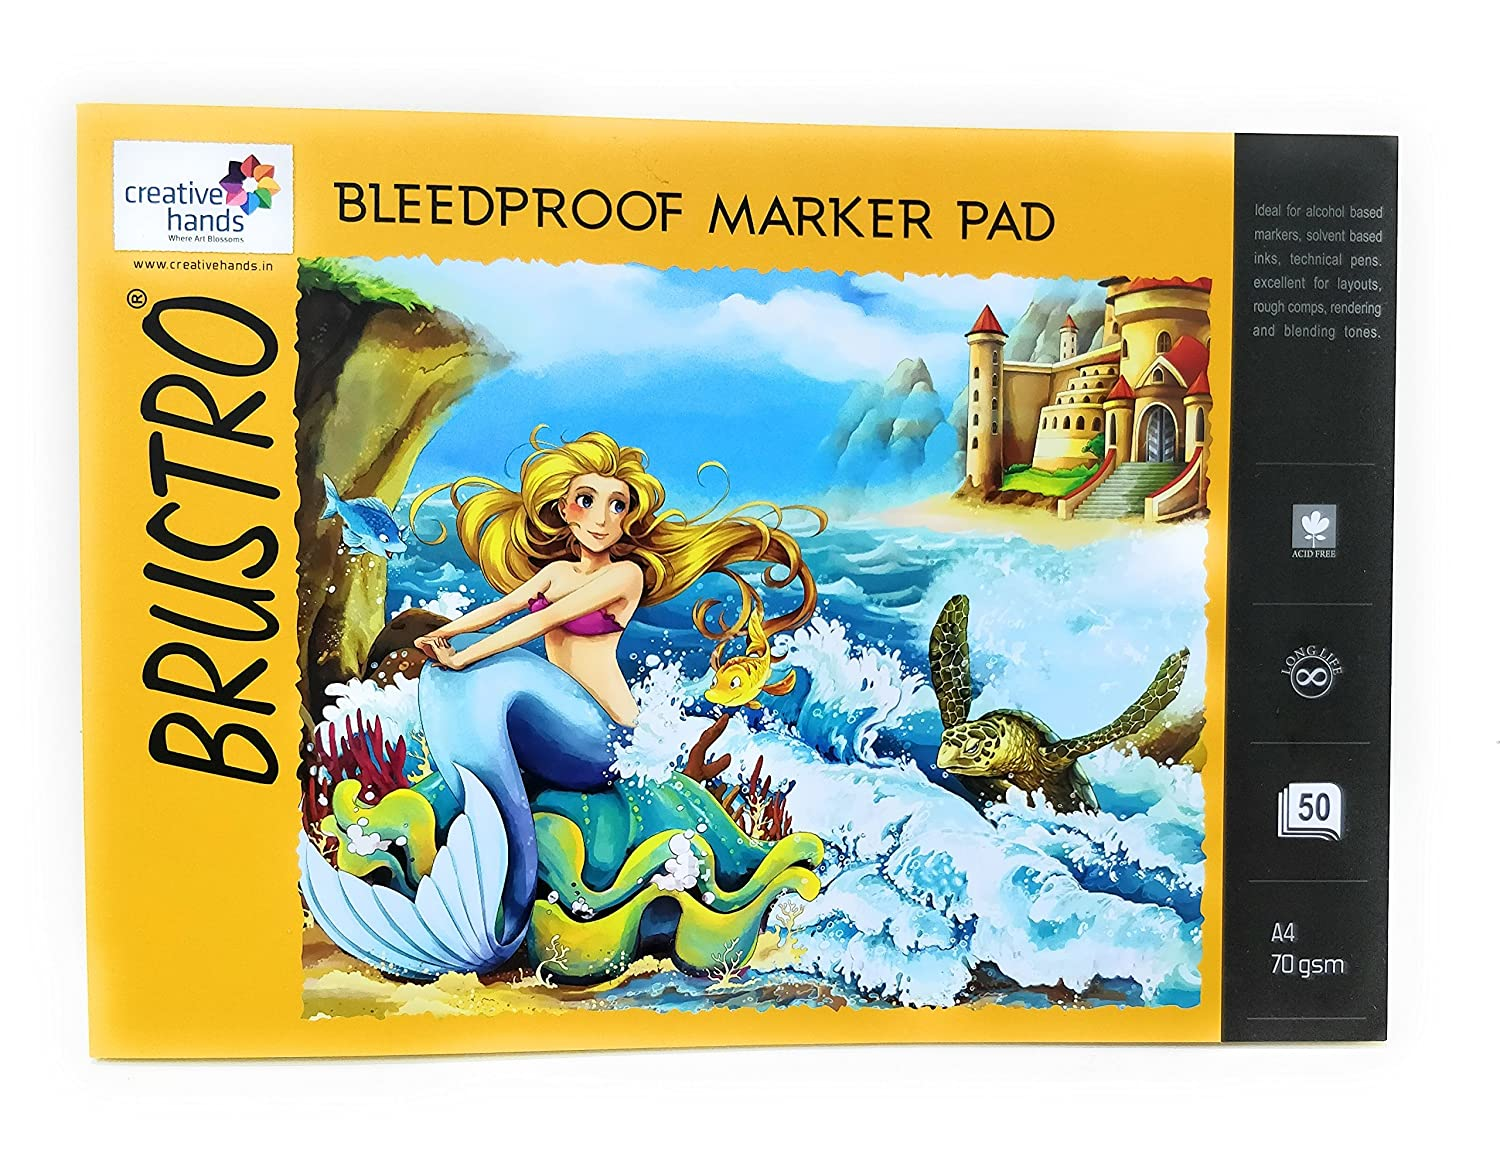 Brustro Bleedproof Marker Pad 70 GSM A4 (50 Sheets)